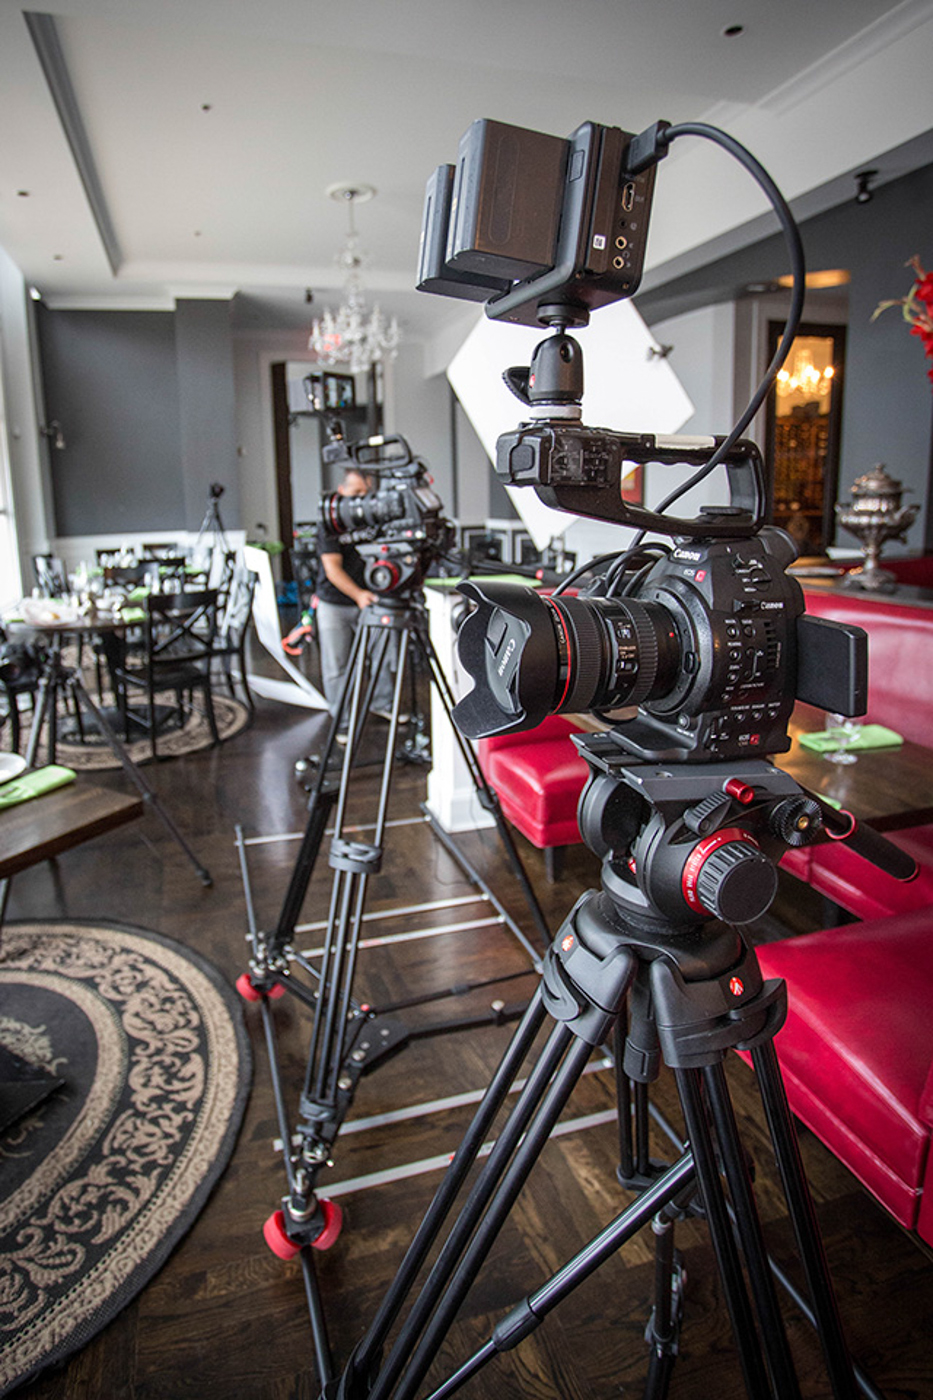 RGG_EDU_Photography_BTS_Behind_The_Scenes_Food_Photography-3022.jpg